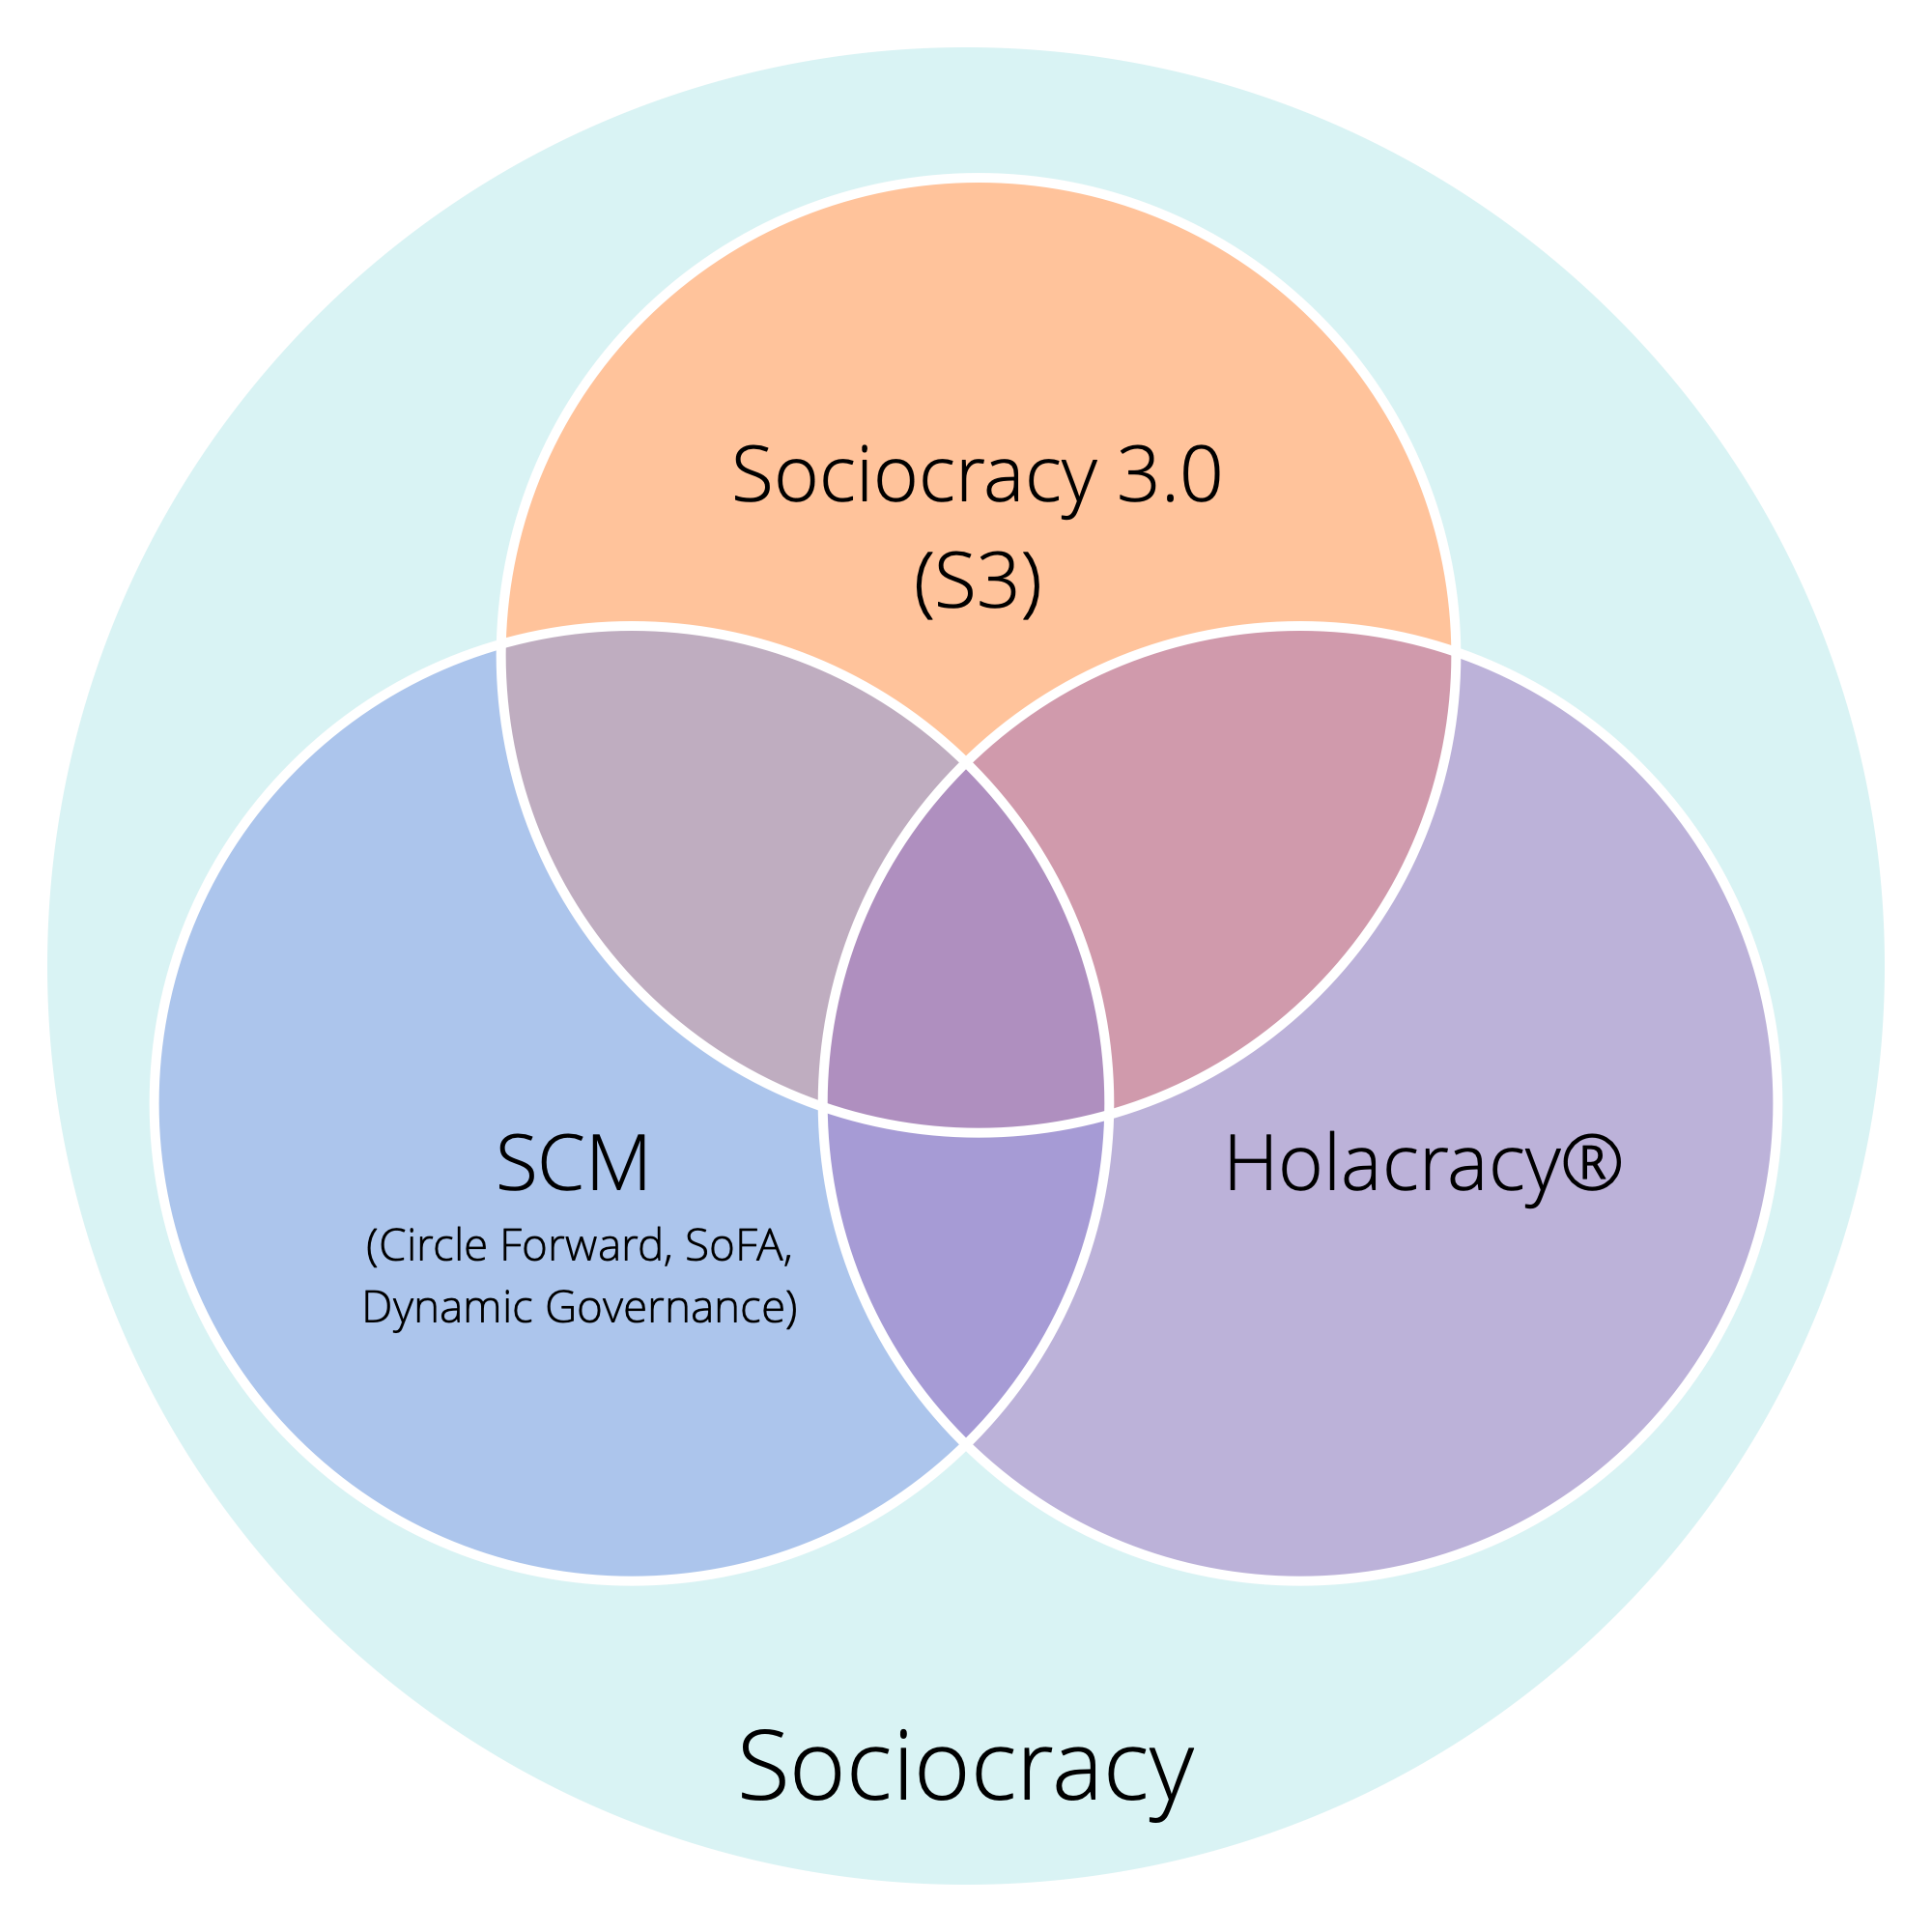 Three variants of sociocracy